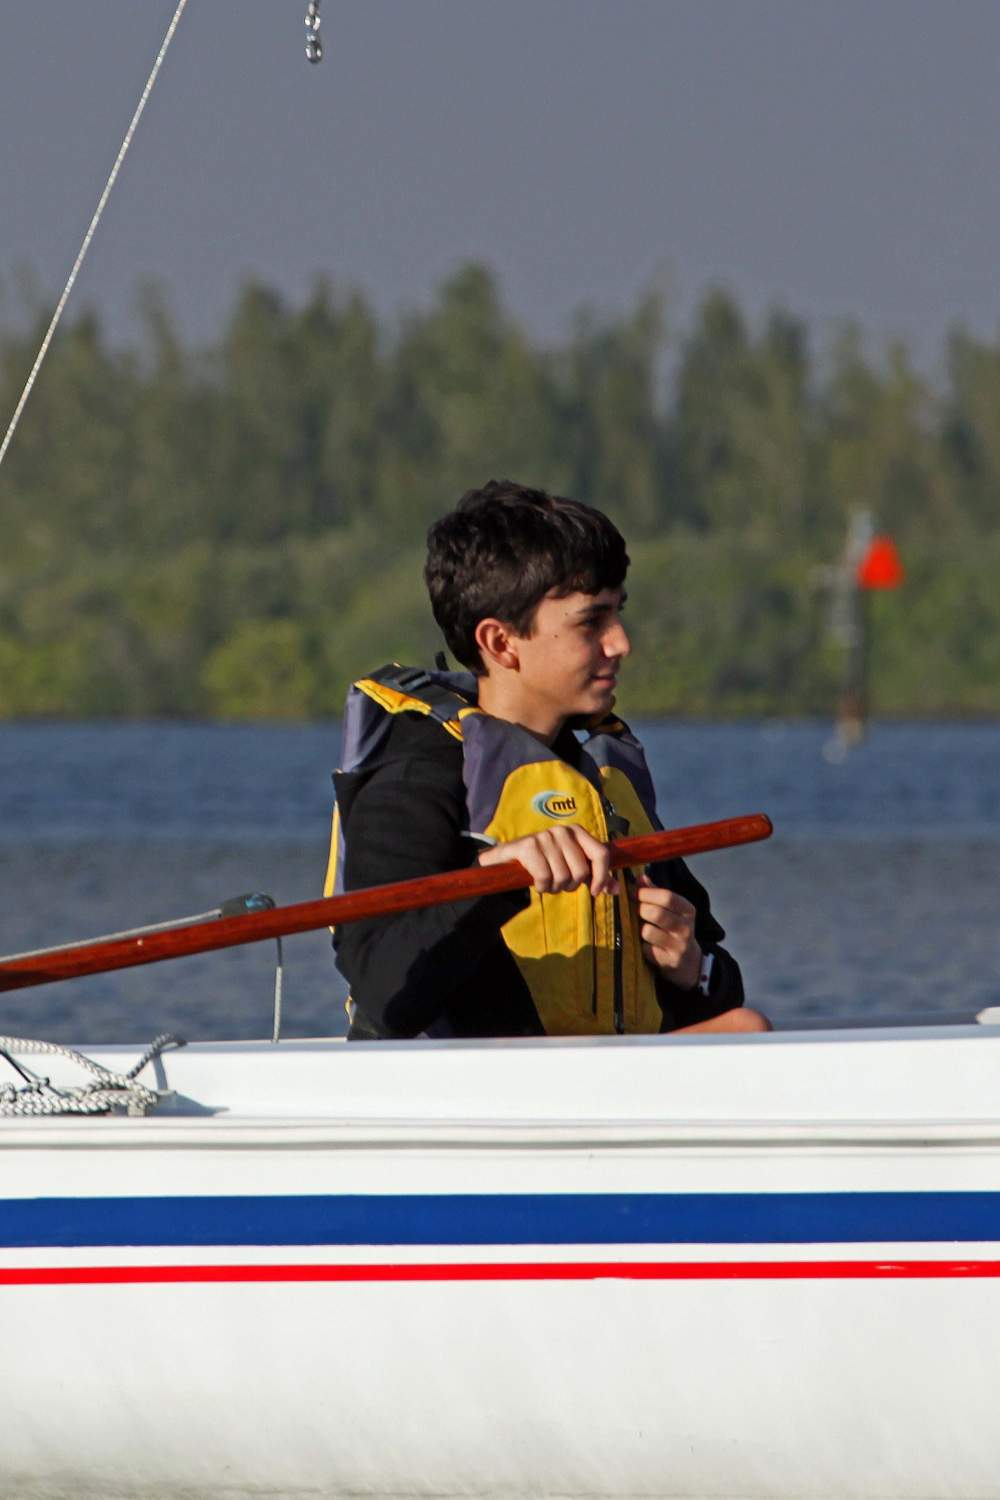 One young man looking to the side, sailing